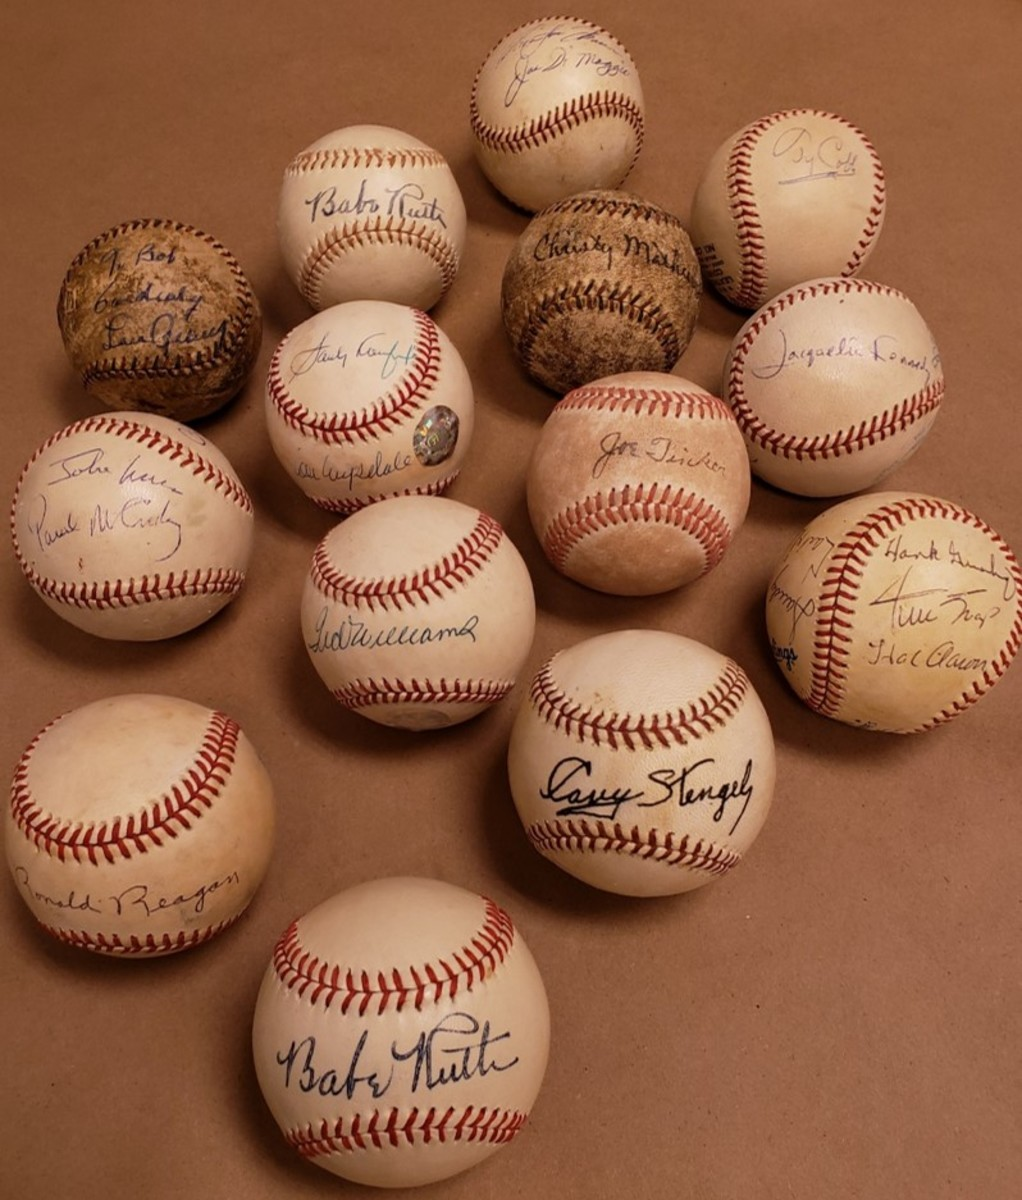 An assortment of forged autographed baseballs seized during the John Rogers investigation. They include forged autographs of Babe Ruth, Christy Mathewson, Ted Williams, John Lennon, Paul McCartney, Jacqueline Kennedy and Ronald Reagan. Photo: FBI